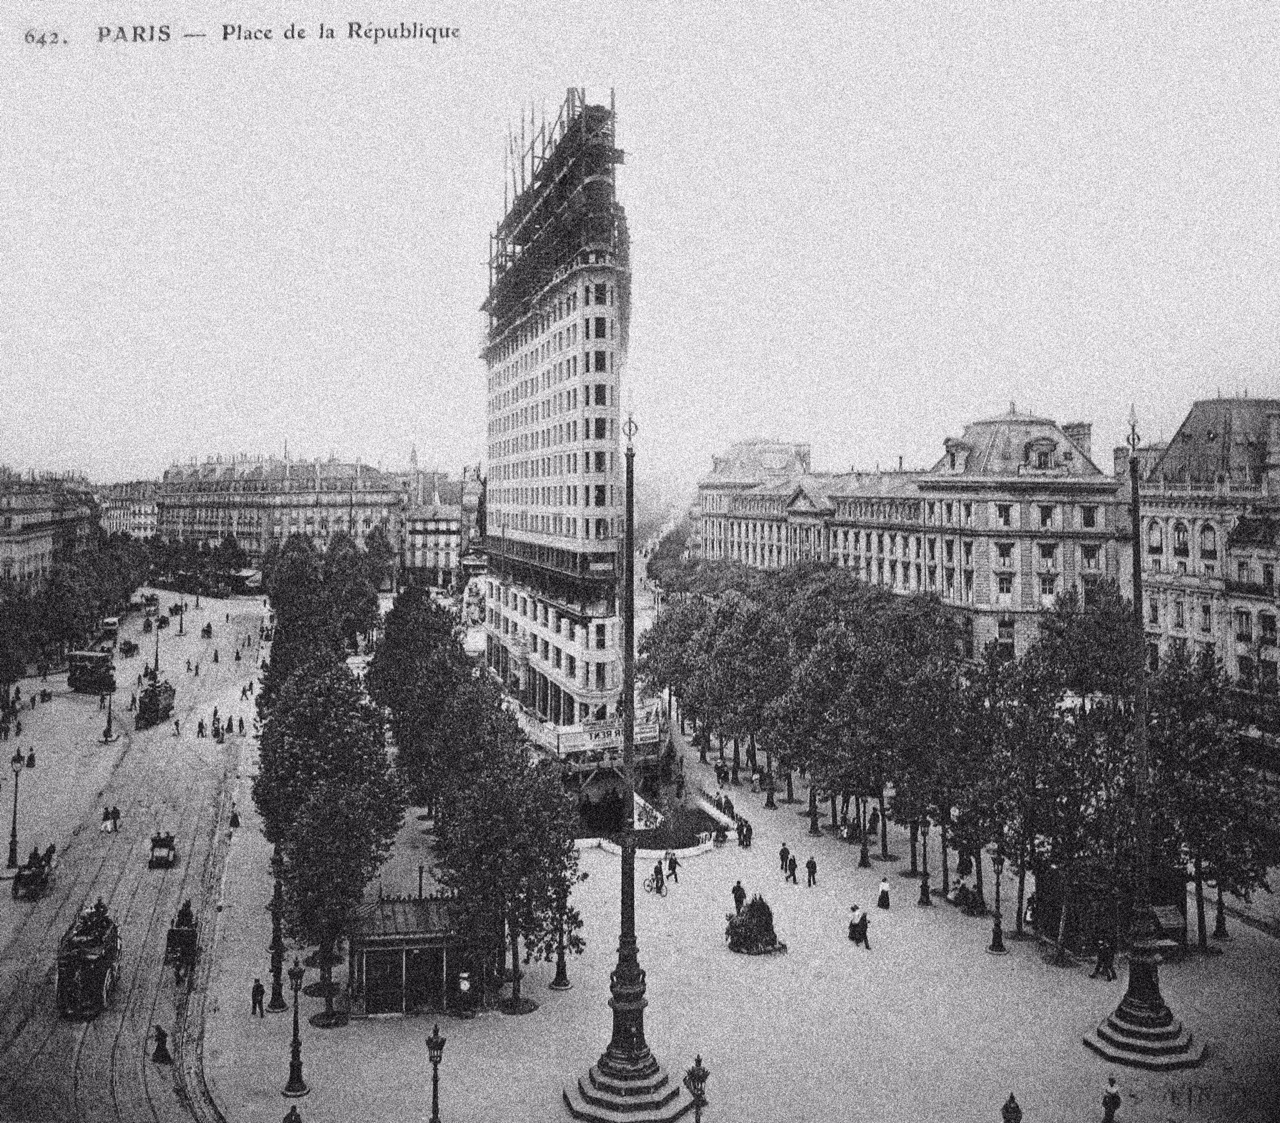 haussmanhattan photomontage republique